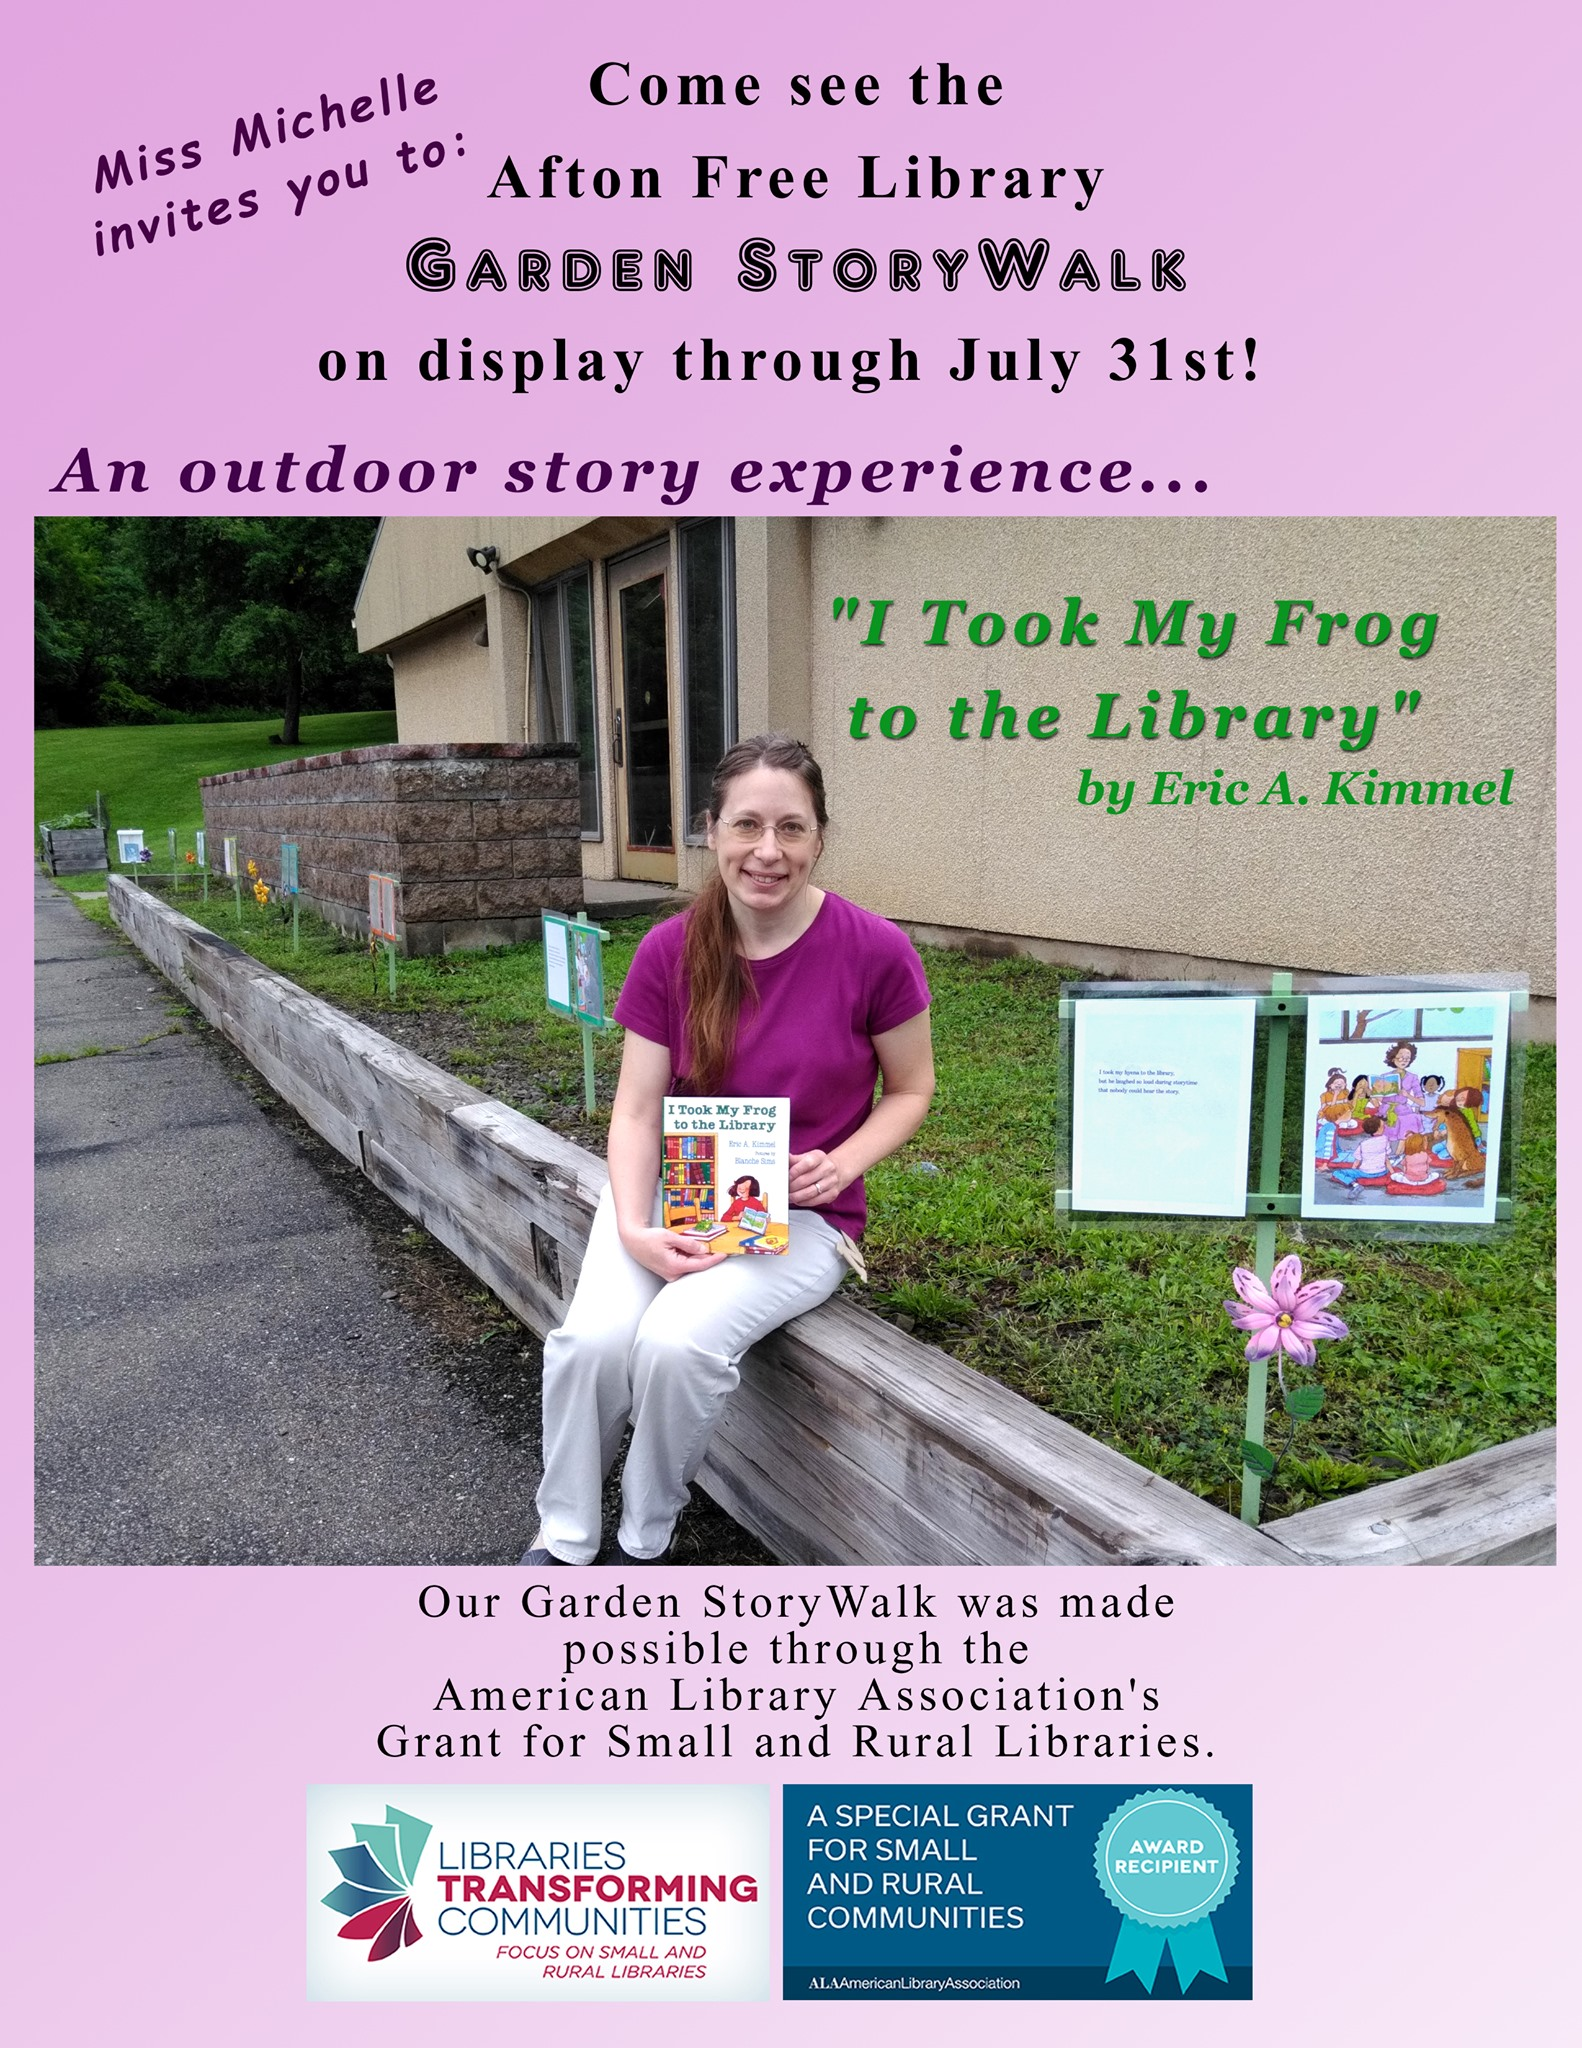 Garden Storywalk is on display through the month of July.